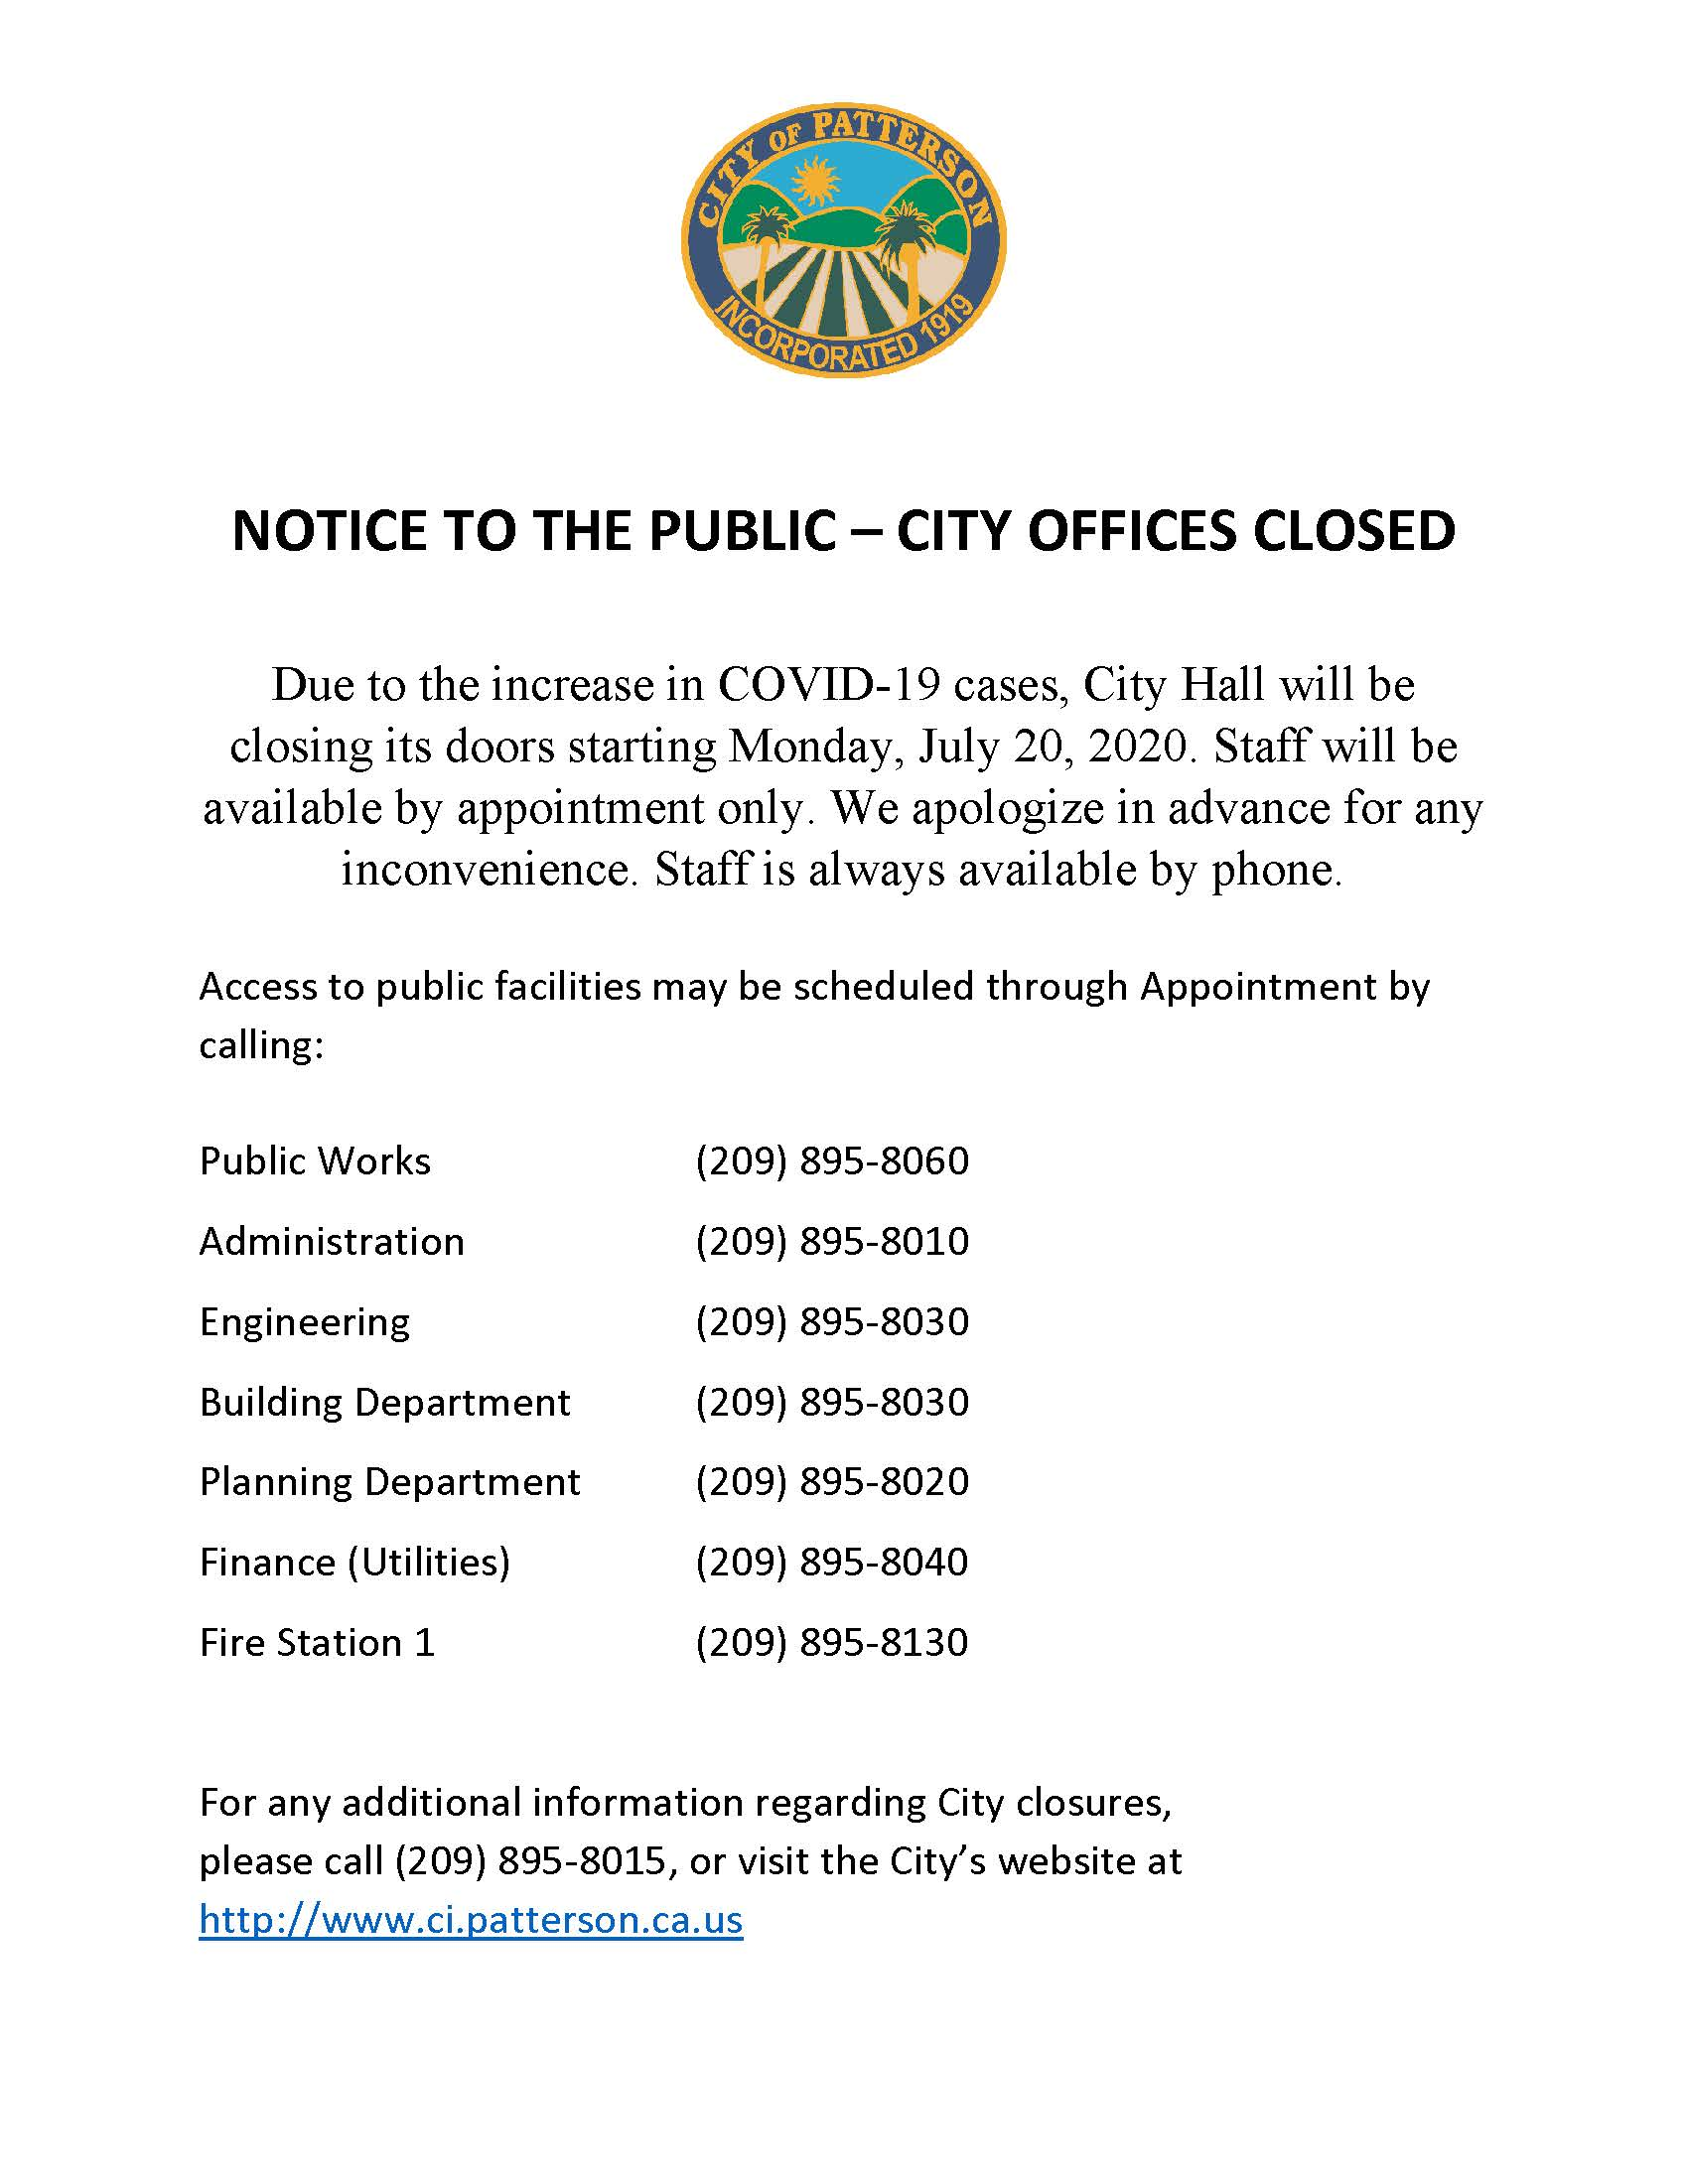 Notice of closure (Revised)